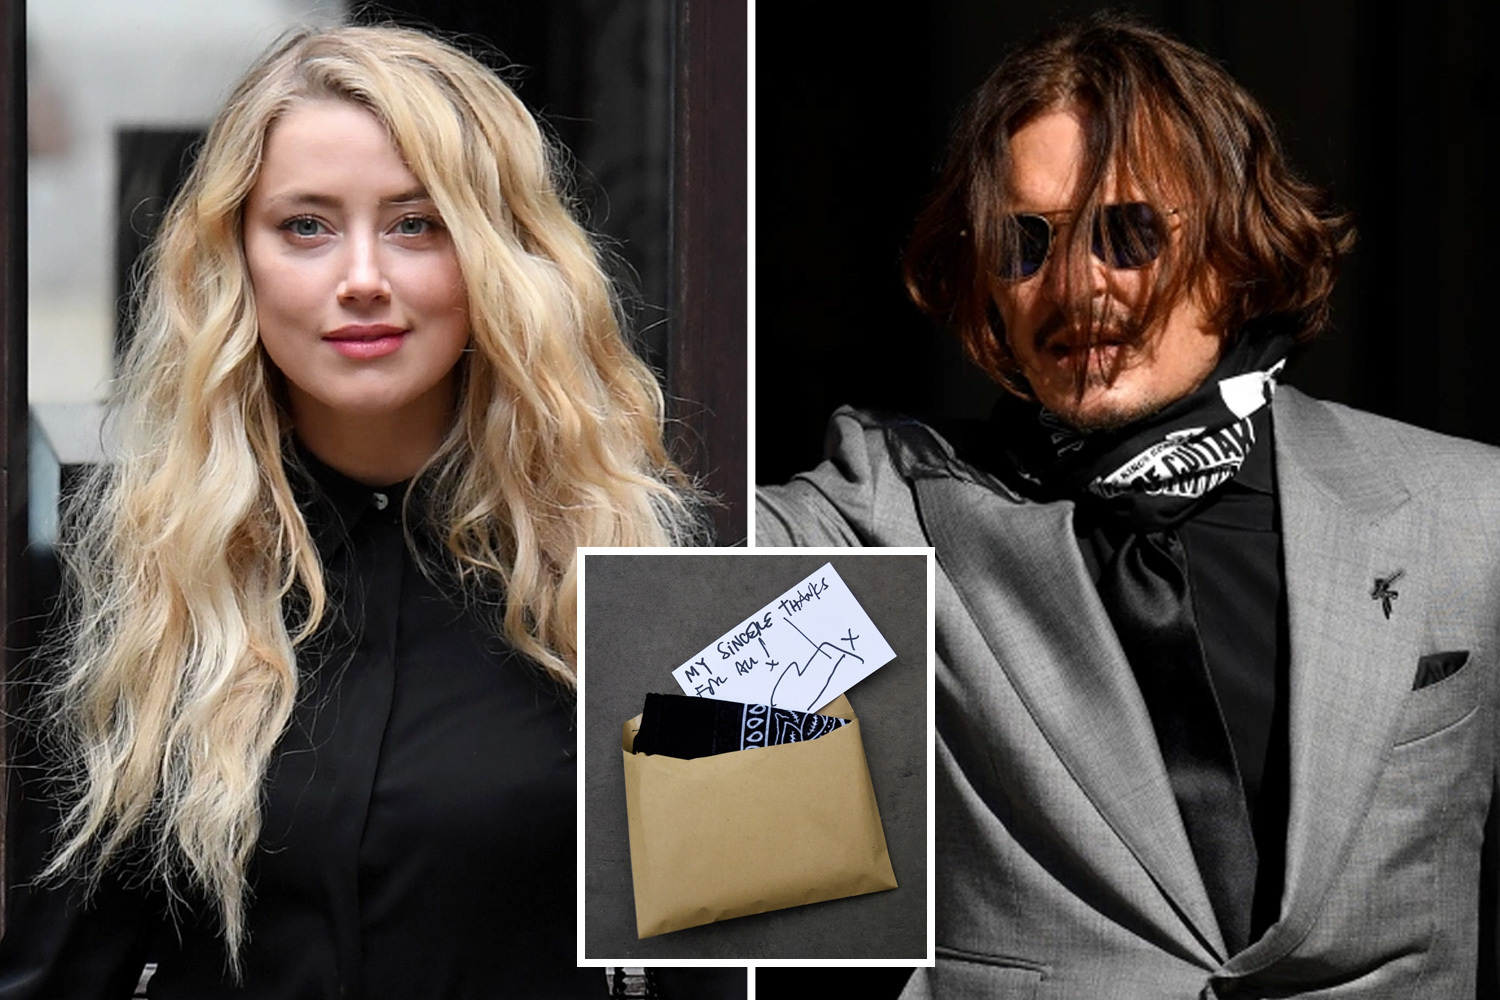 Johnny Depp fans armed with gifts storm court as he gives out handwritten notes and bandanas